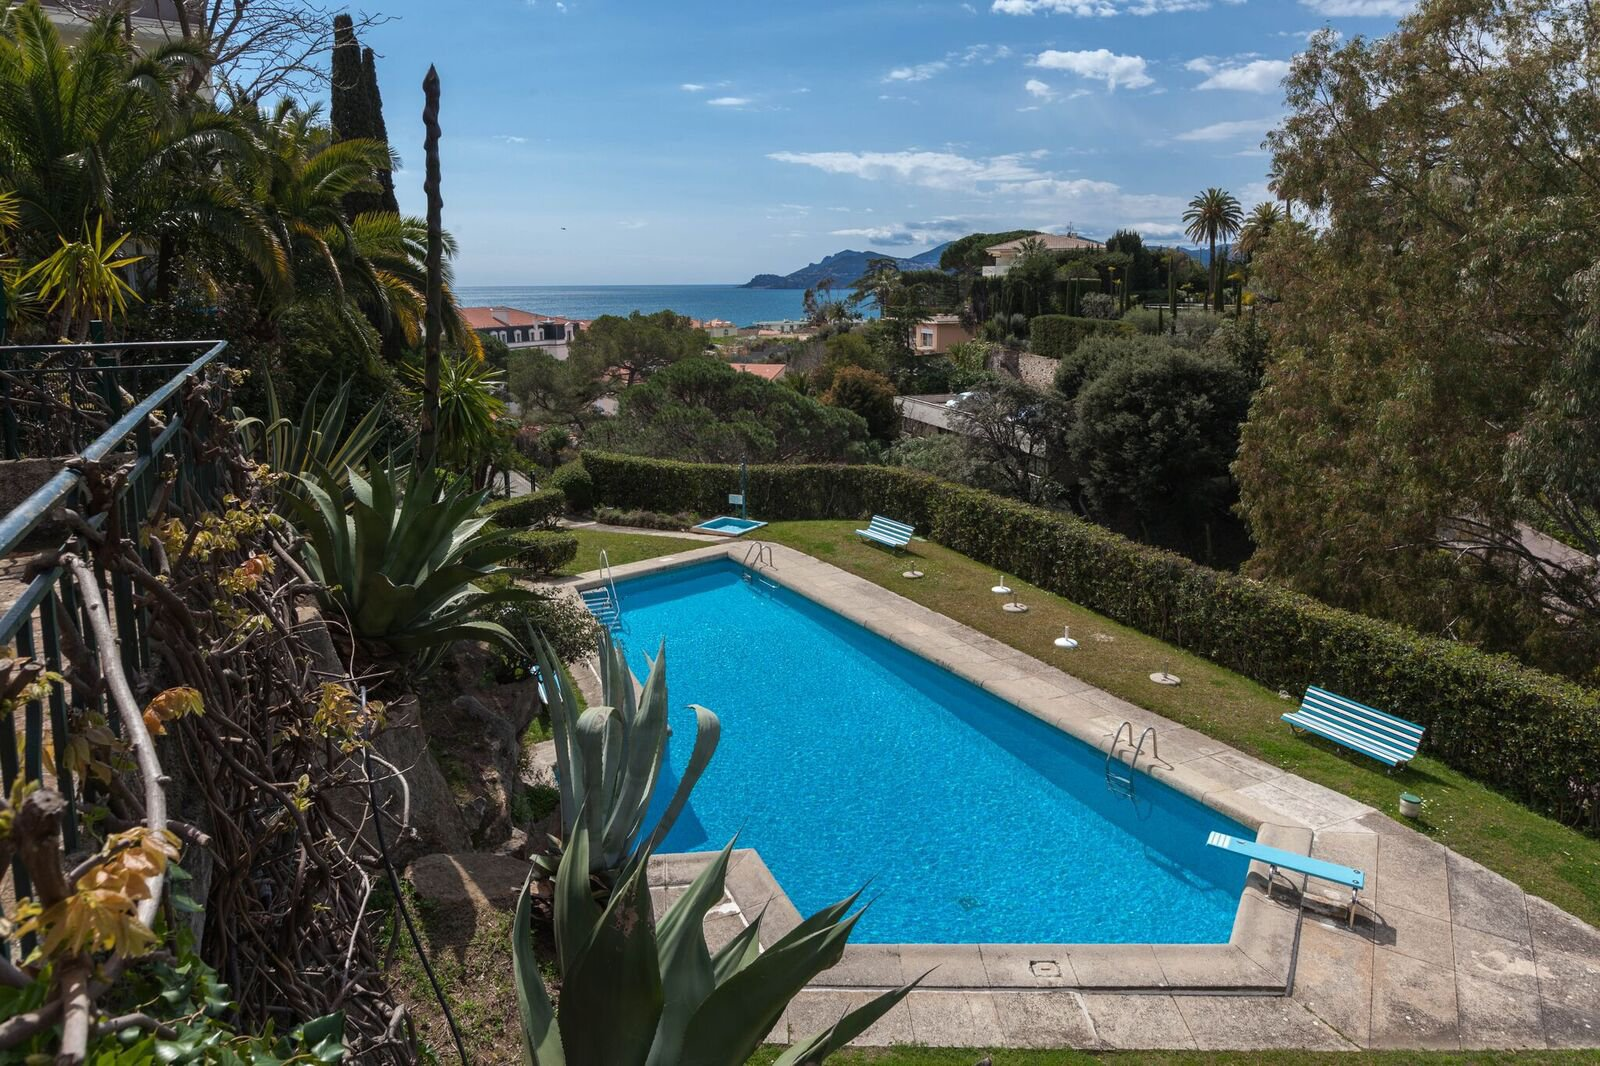 4P 113M² + 23M² TERRACE SOUTH PANORAMIC SEA VIEW